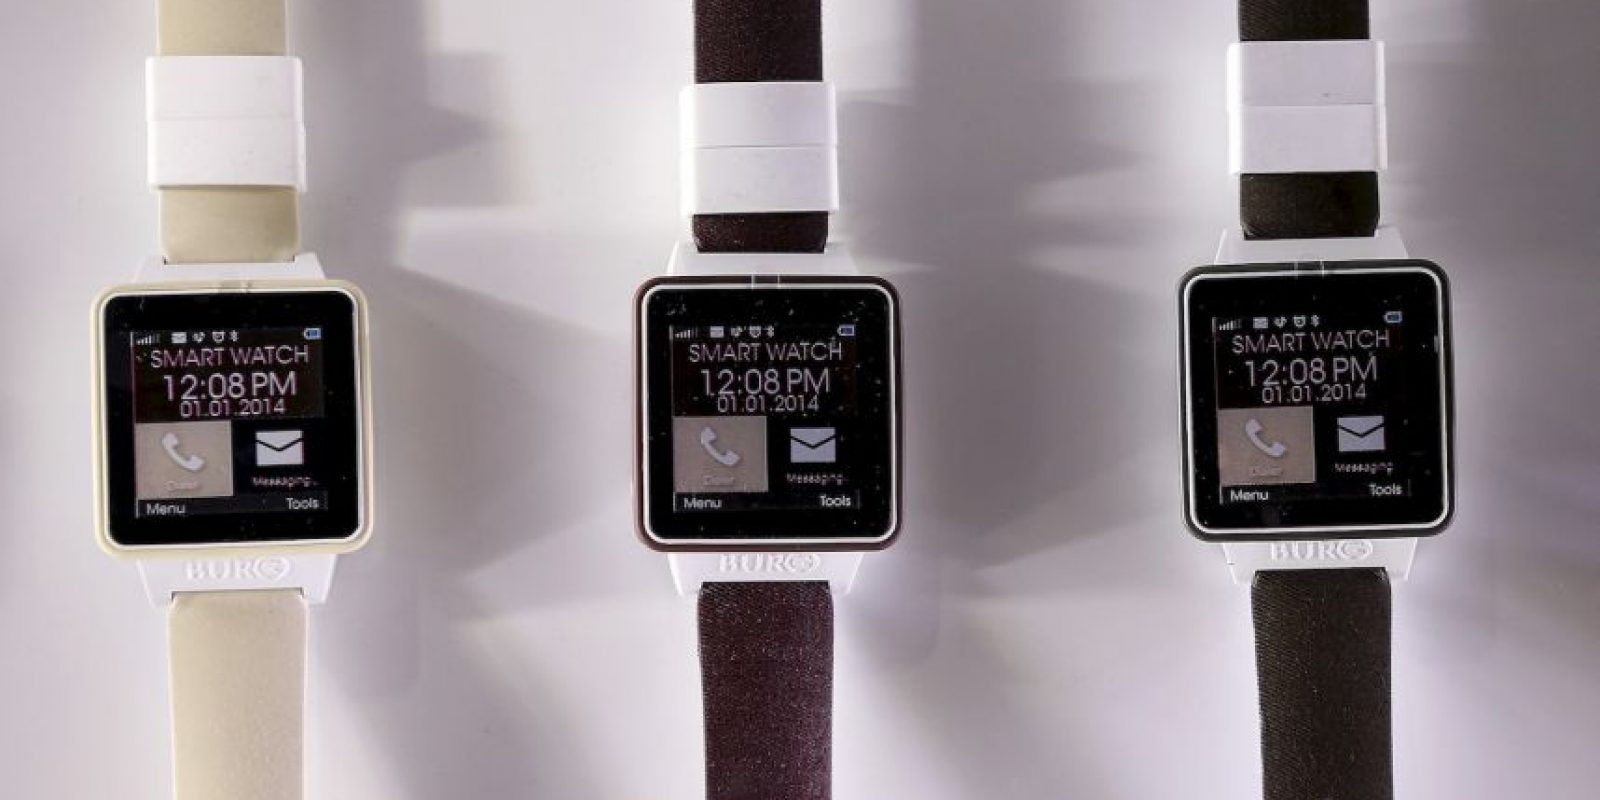 Se especula que la pantalla para el Apple Watch 2 sea creada por la empresa Samsung. Foto: Getty